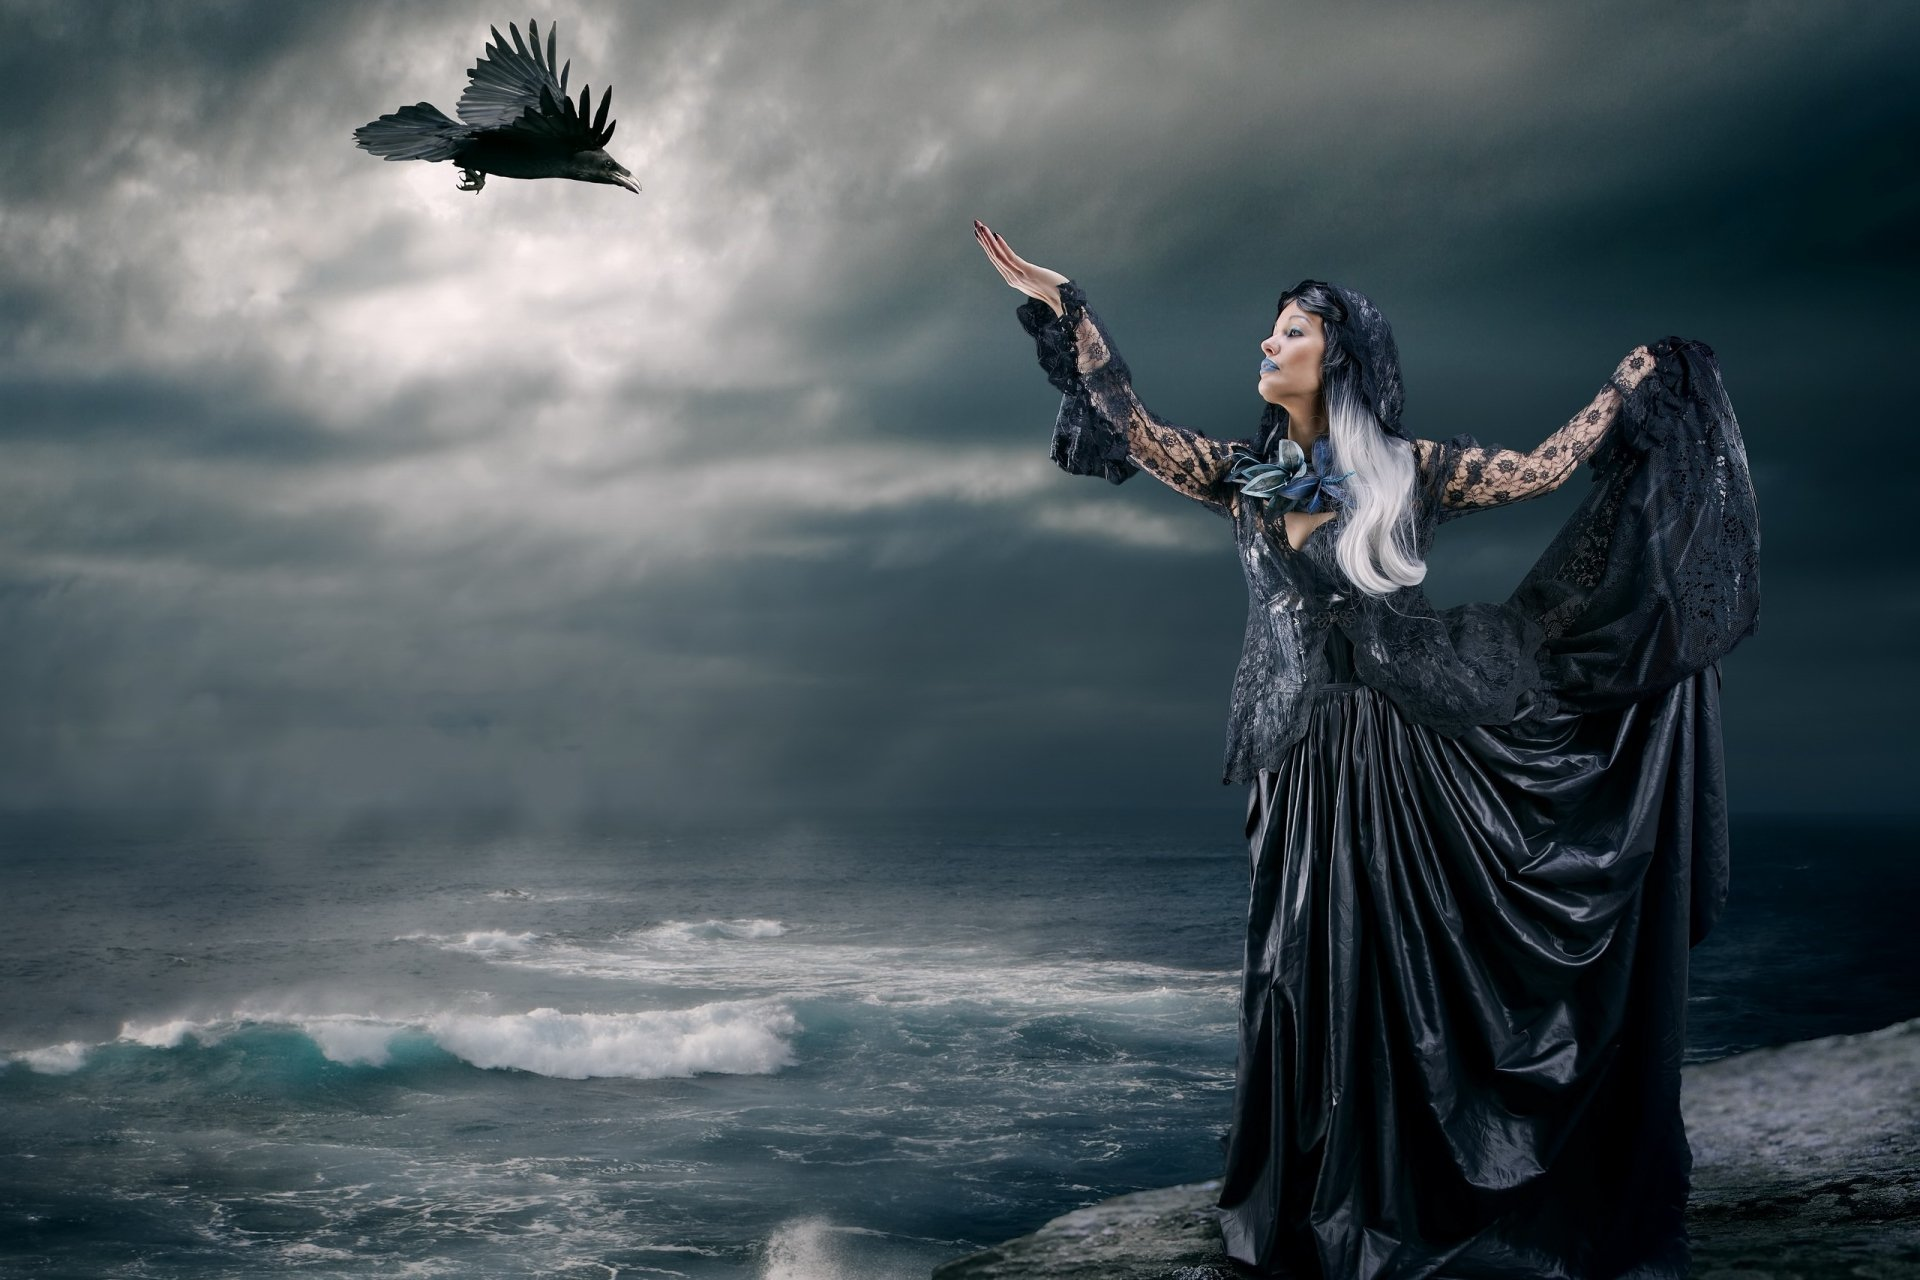 Gothic Girl Wallpaper Iphone Goth Girl And Raven Hd Wallpaper Background Image